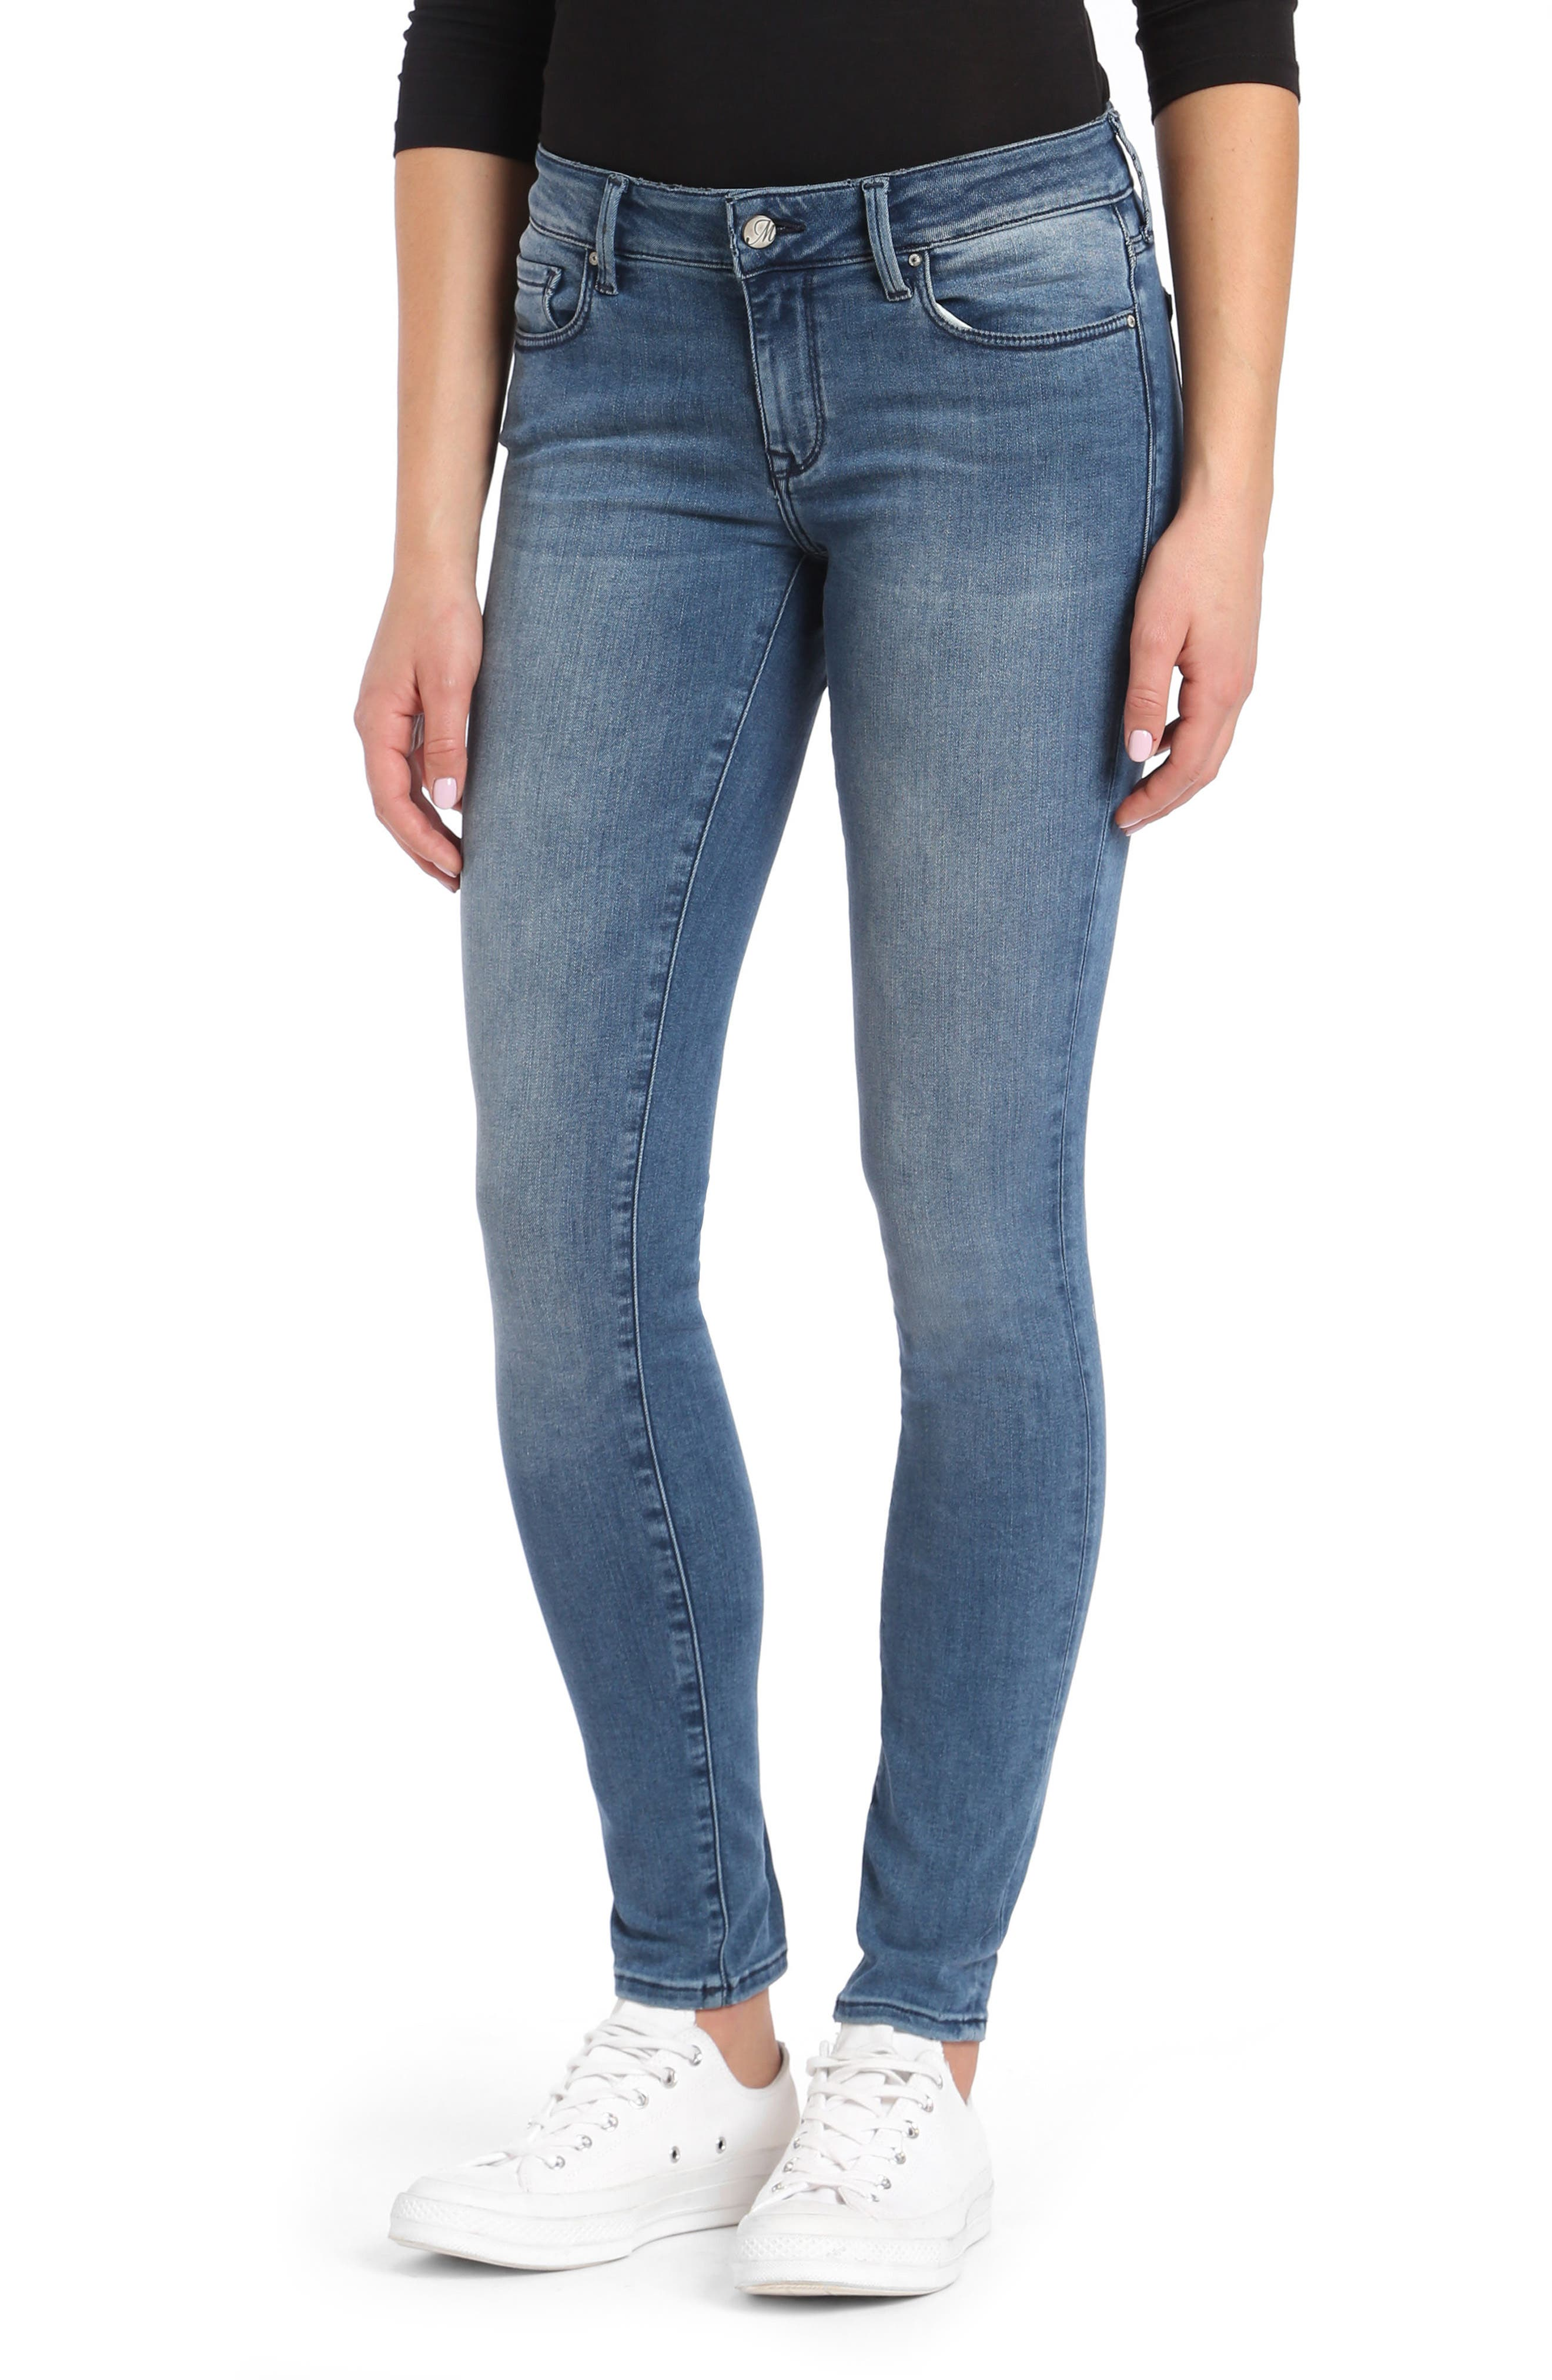 Adriana Ankle Skinny Jeans,                         Main,                         color, Light Foggy Blue Tribeca